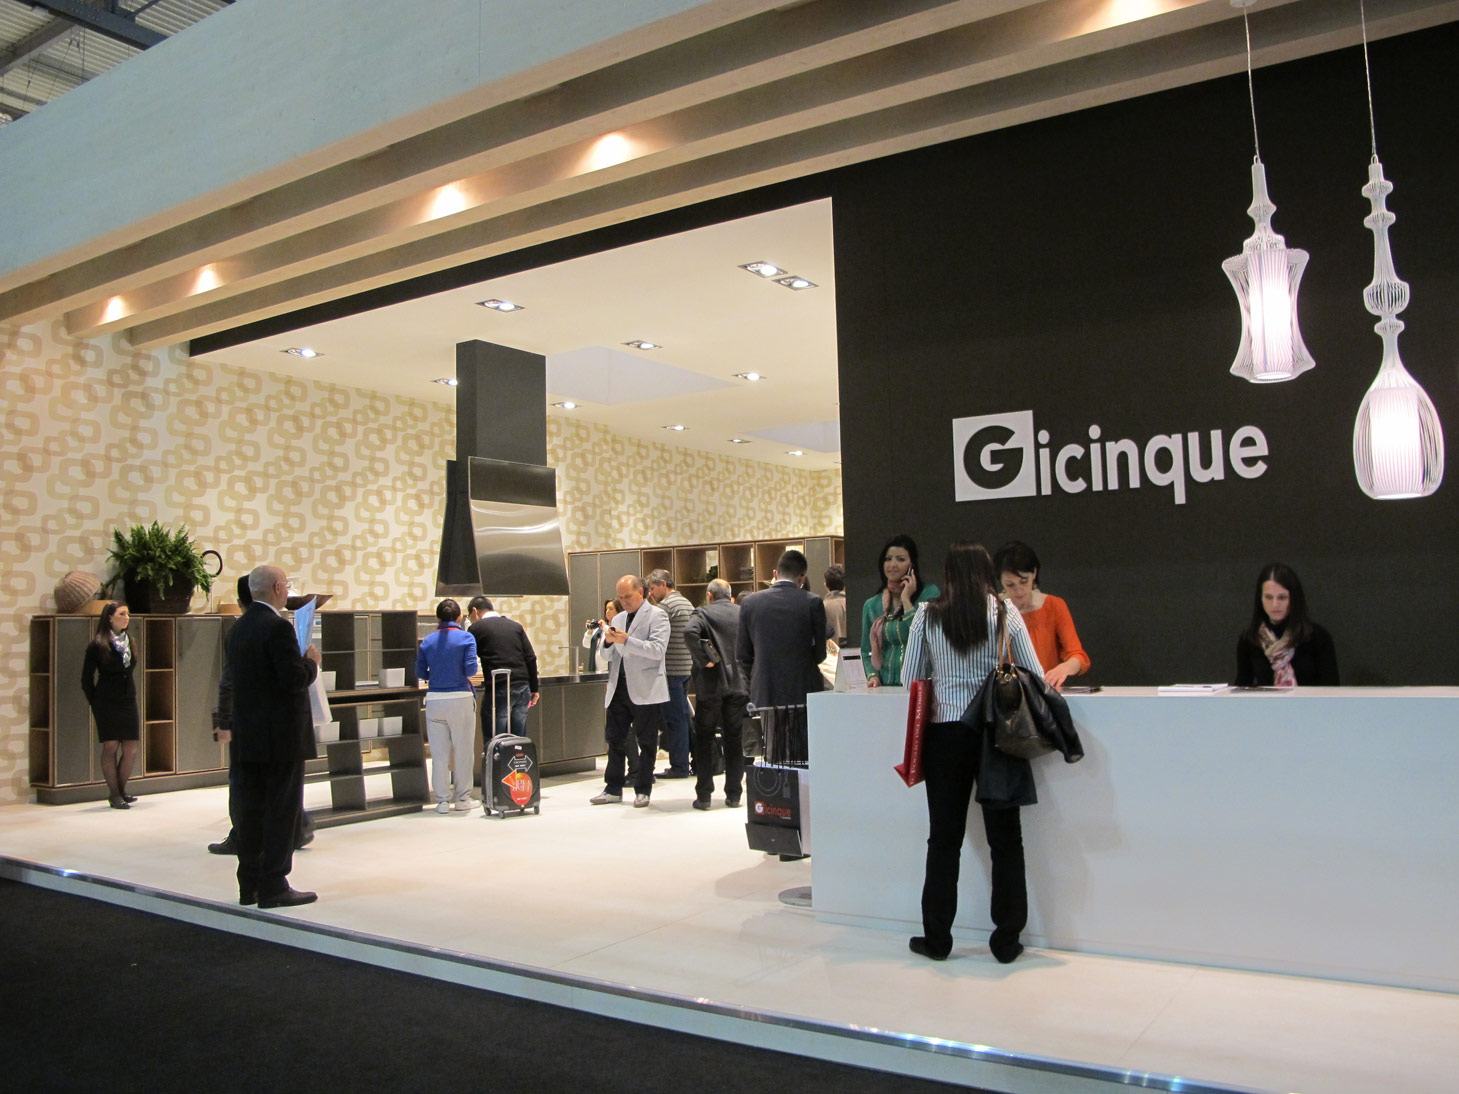 Gicinque al Salone del Mobile 2012: guardate le prime foto e i video dello stand!